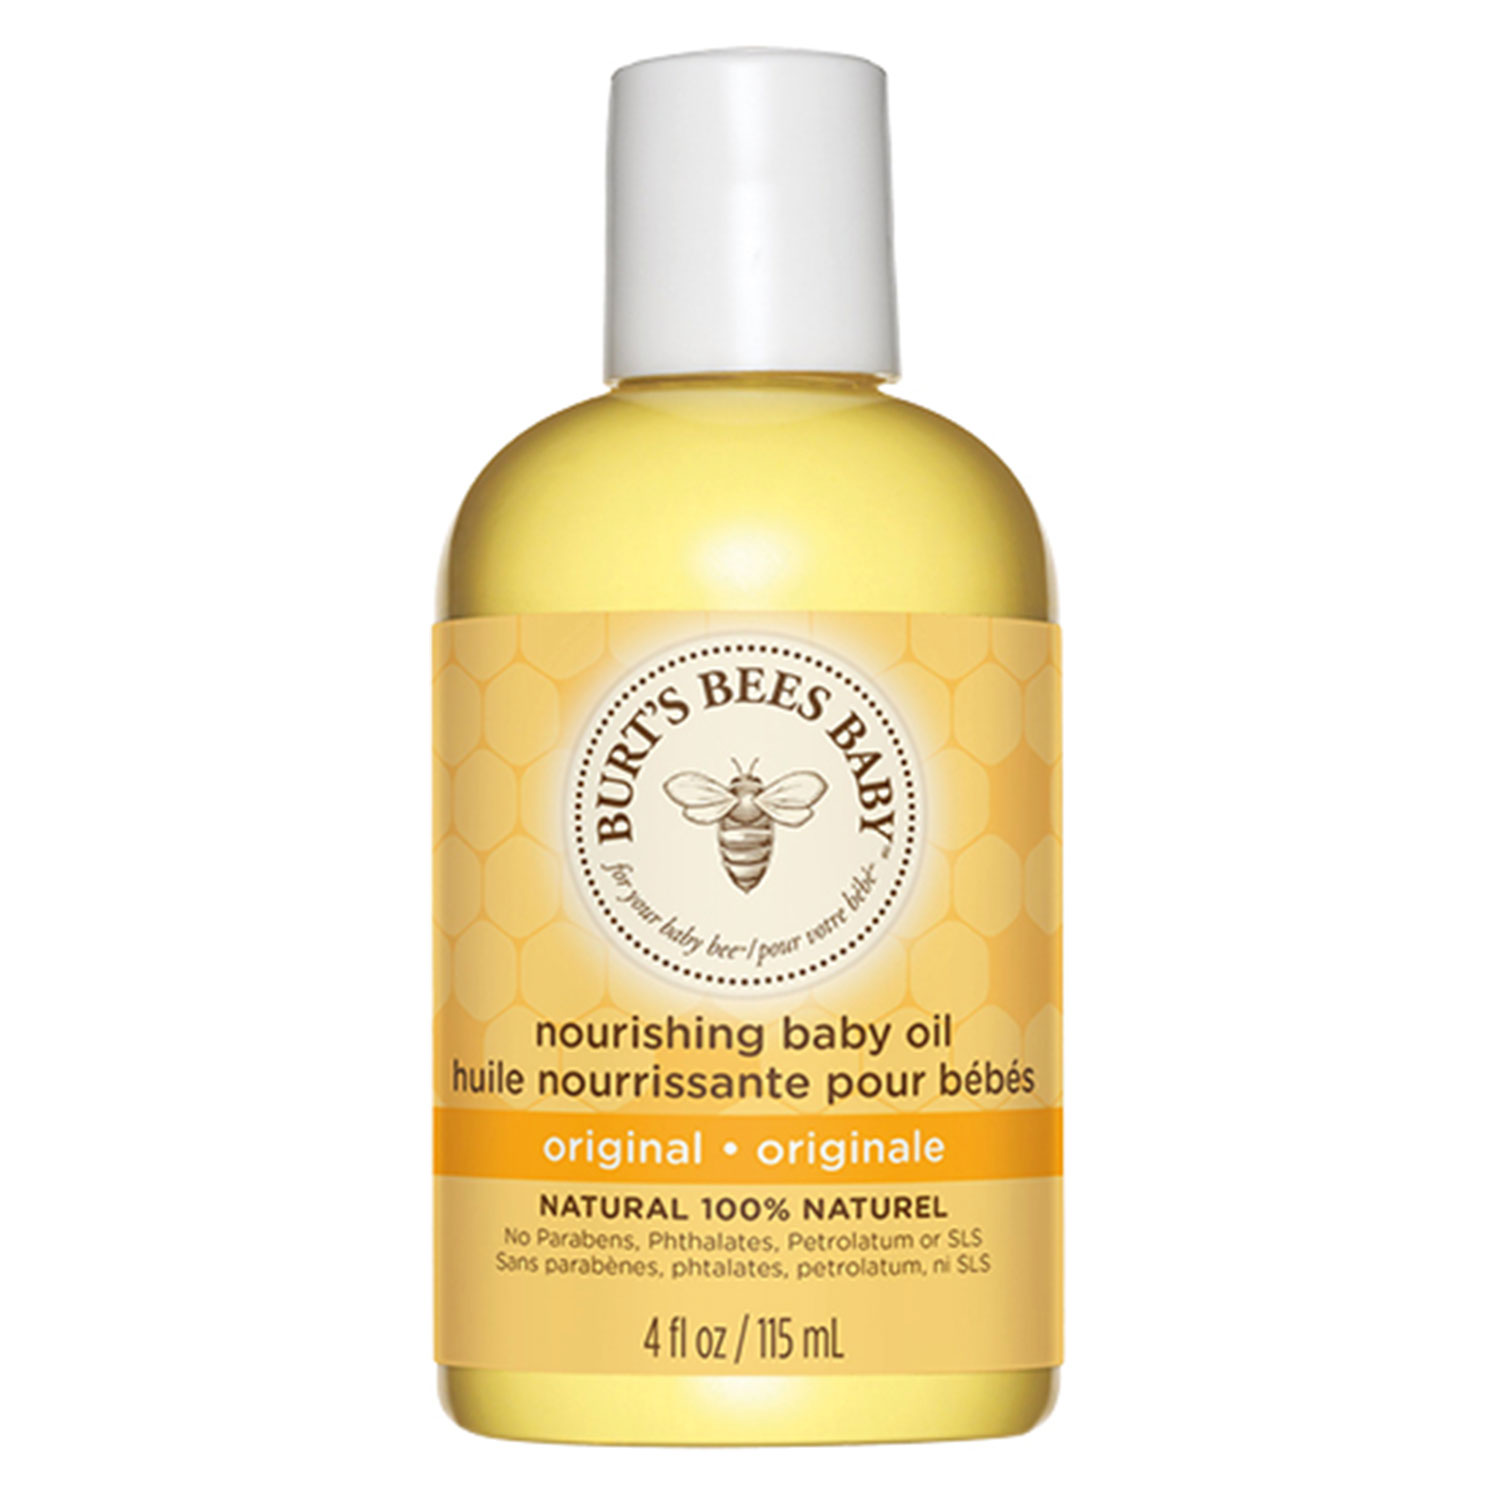 Baby Bee - Nourishing Baby Oil